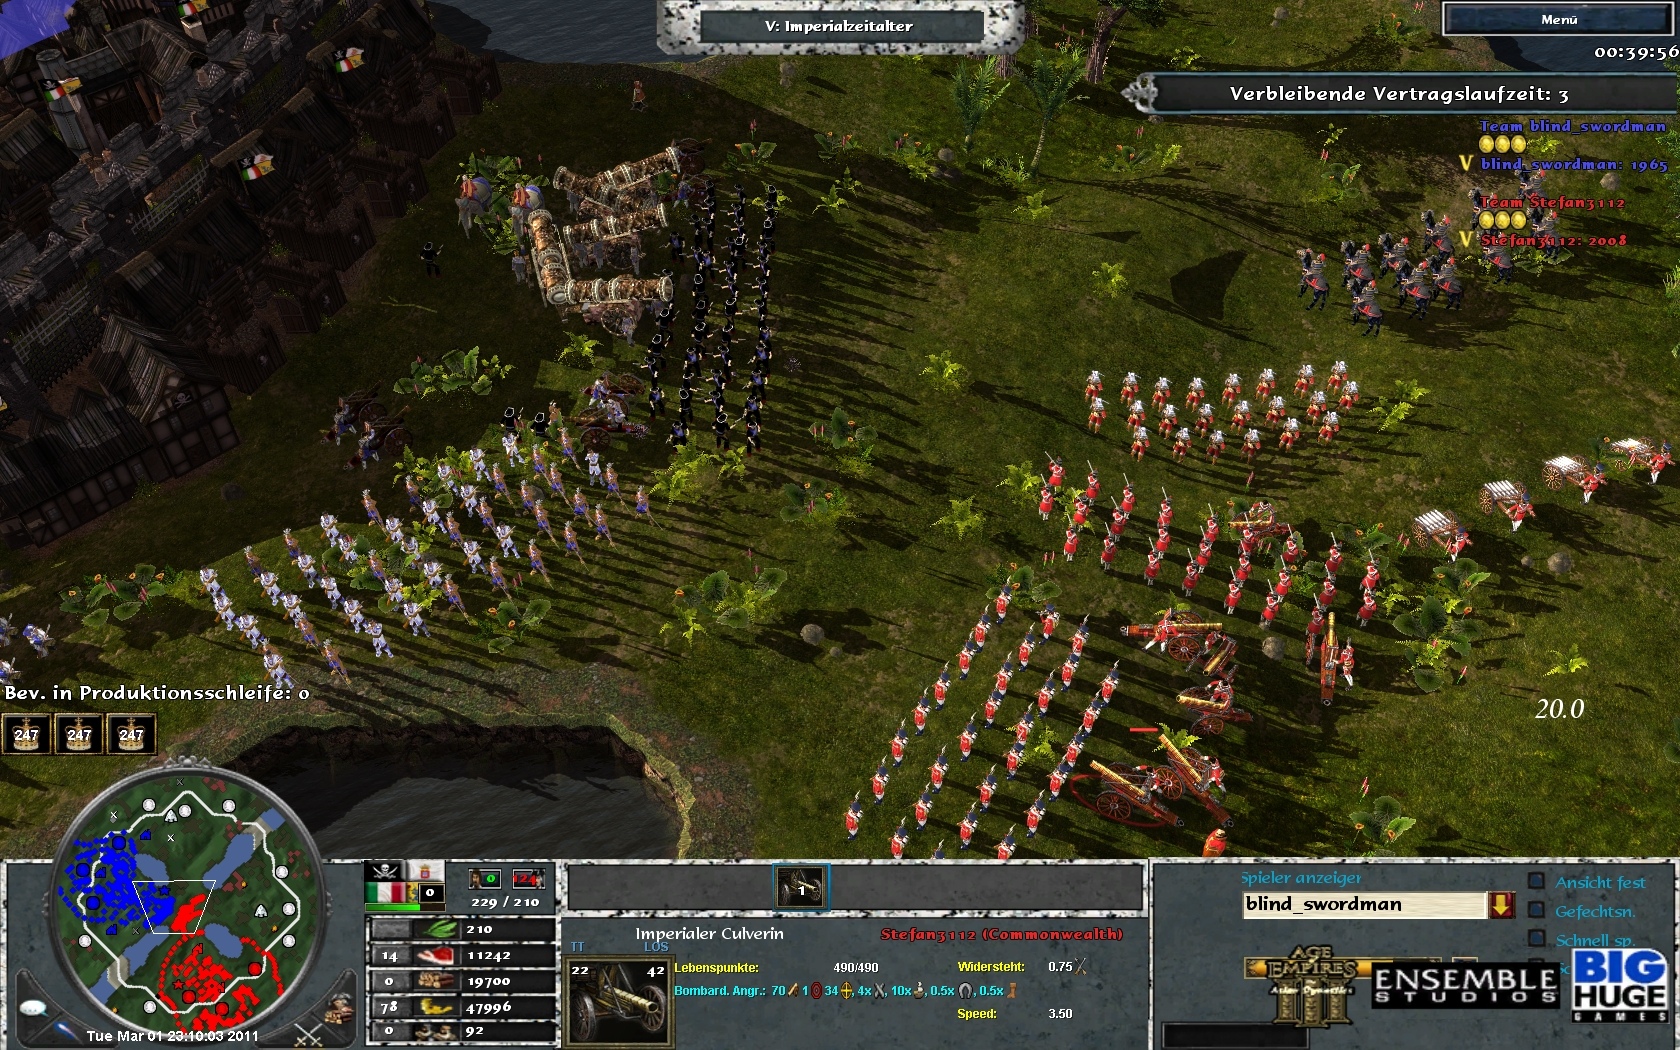 Age of Empires 2 full soundtrack download macbook Air